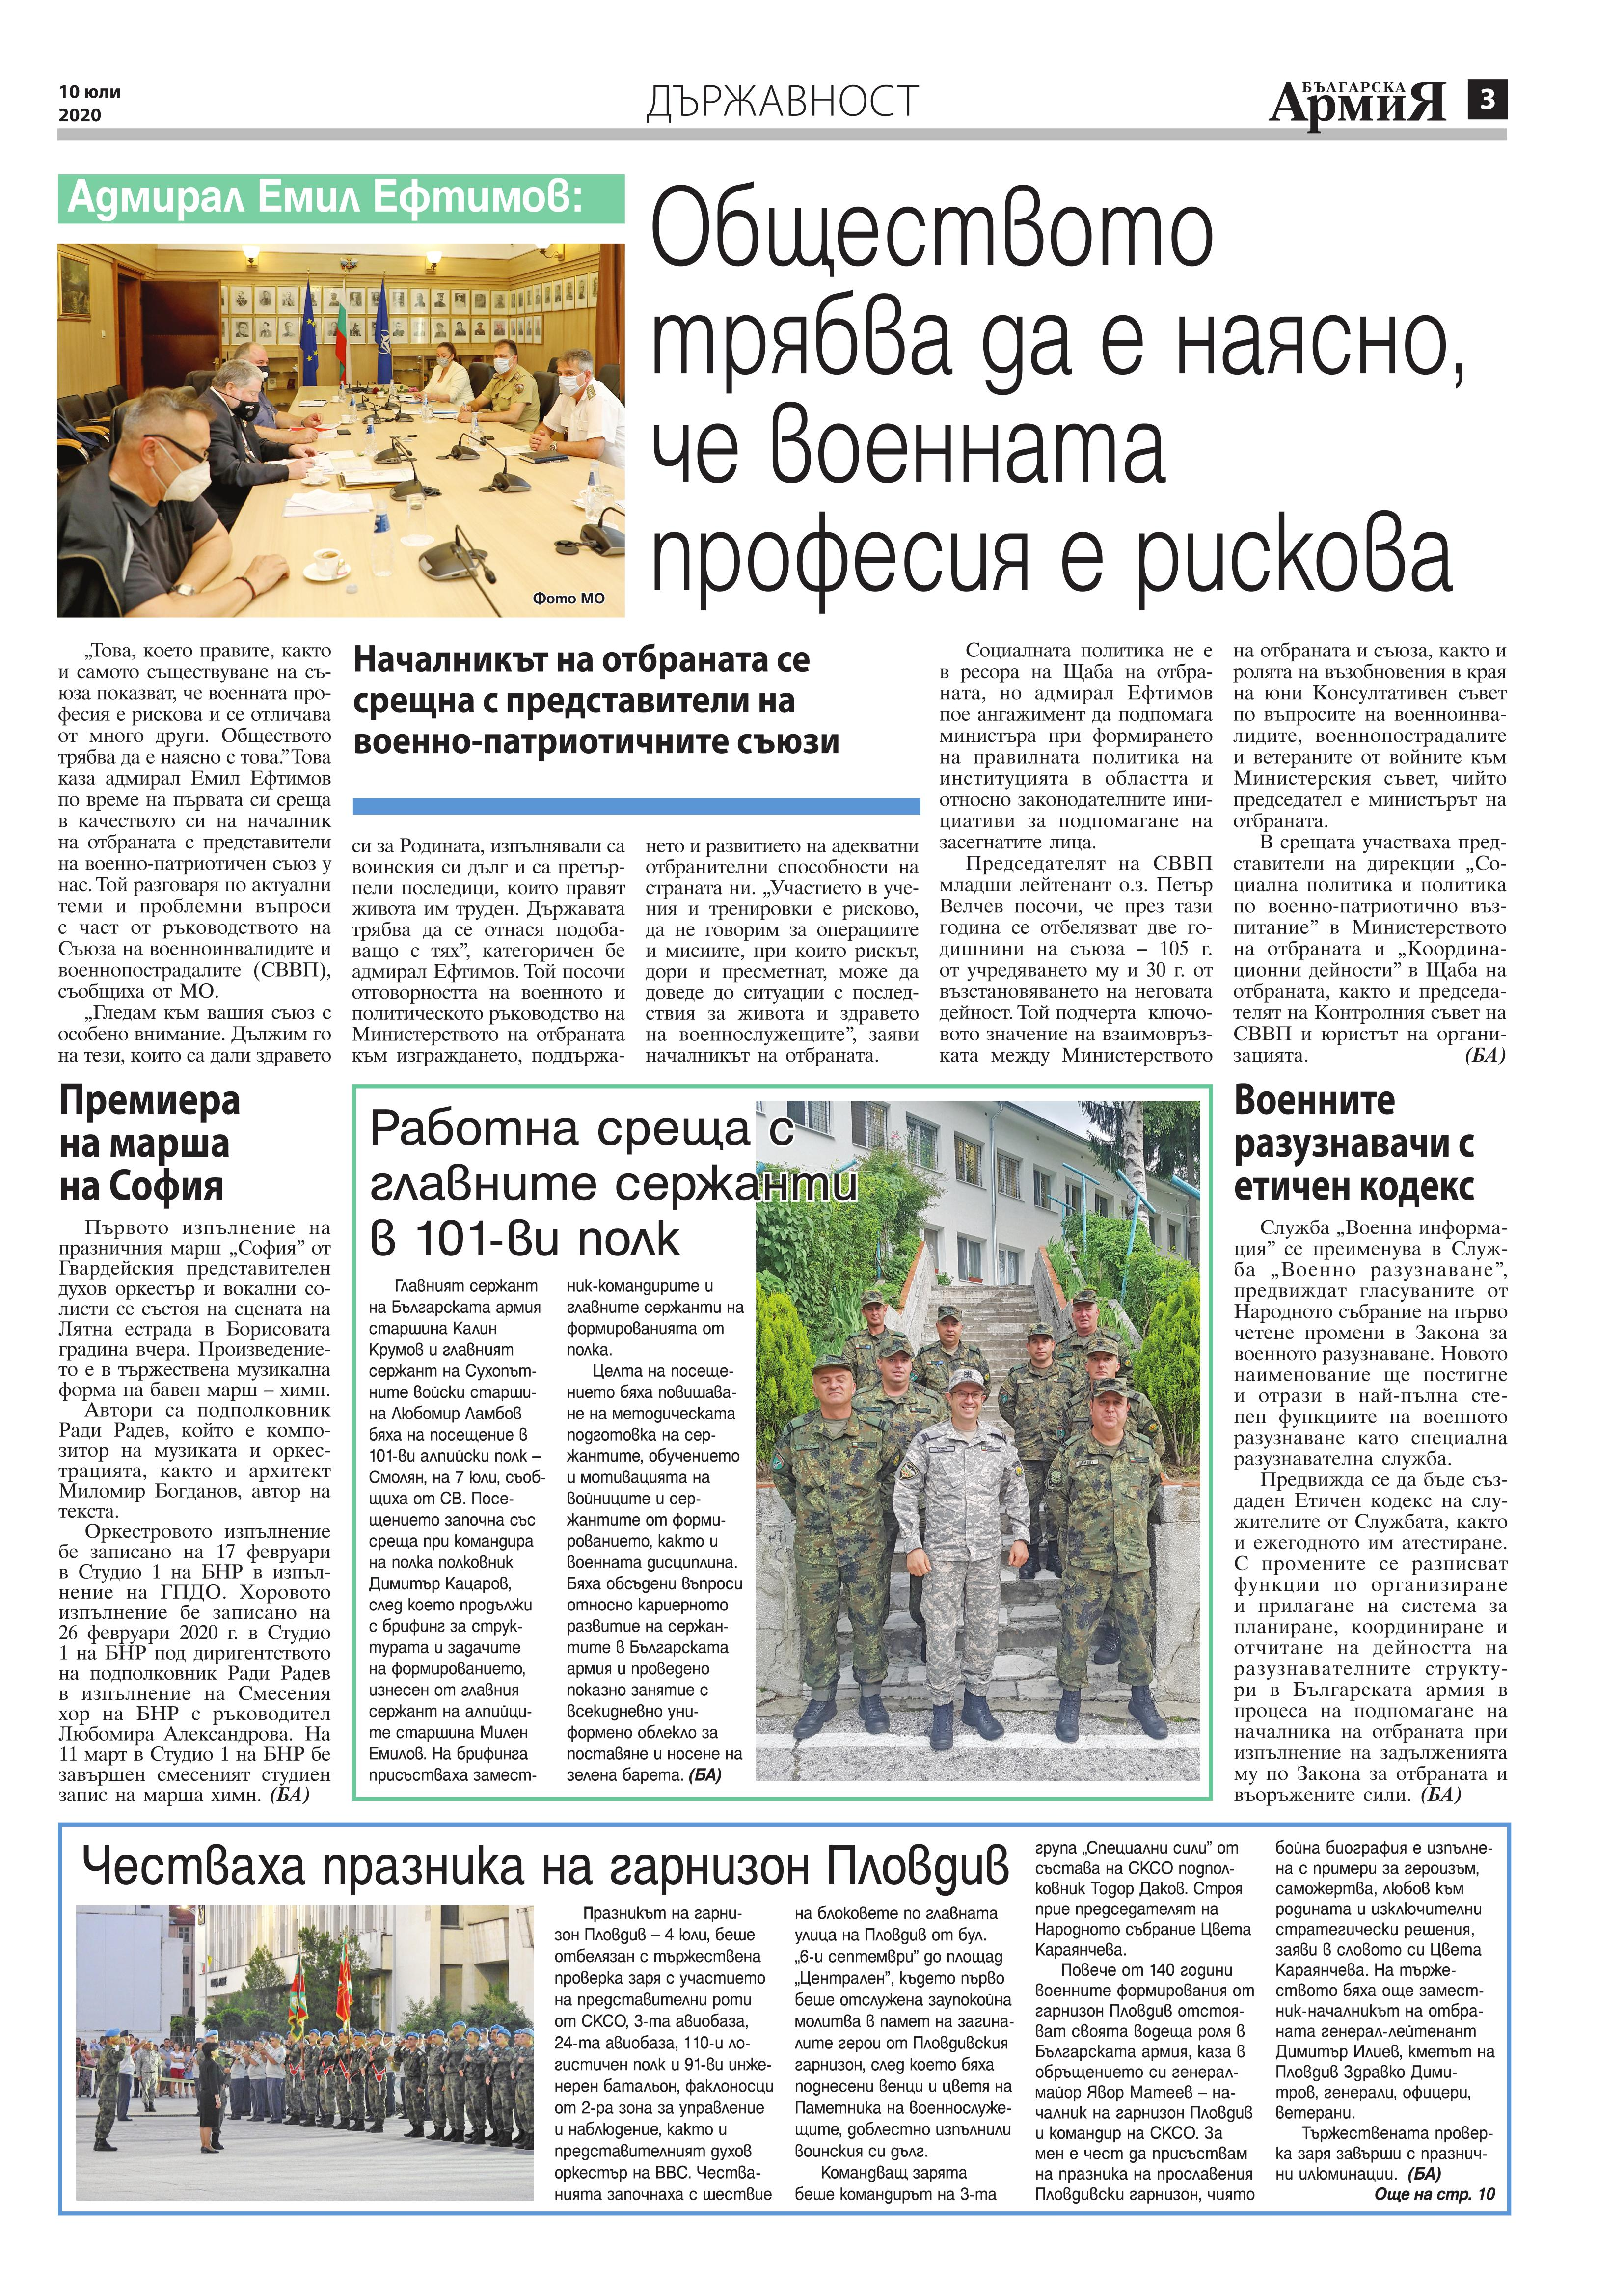 https://www.armymedia.bg/wp-content/uploads/2015/06/03.page1_-143.jpg